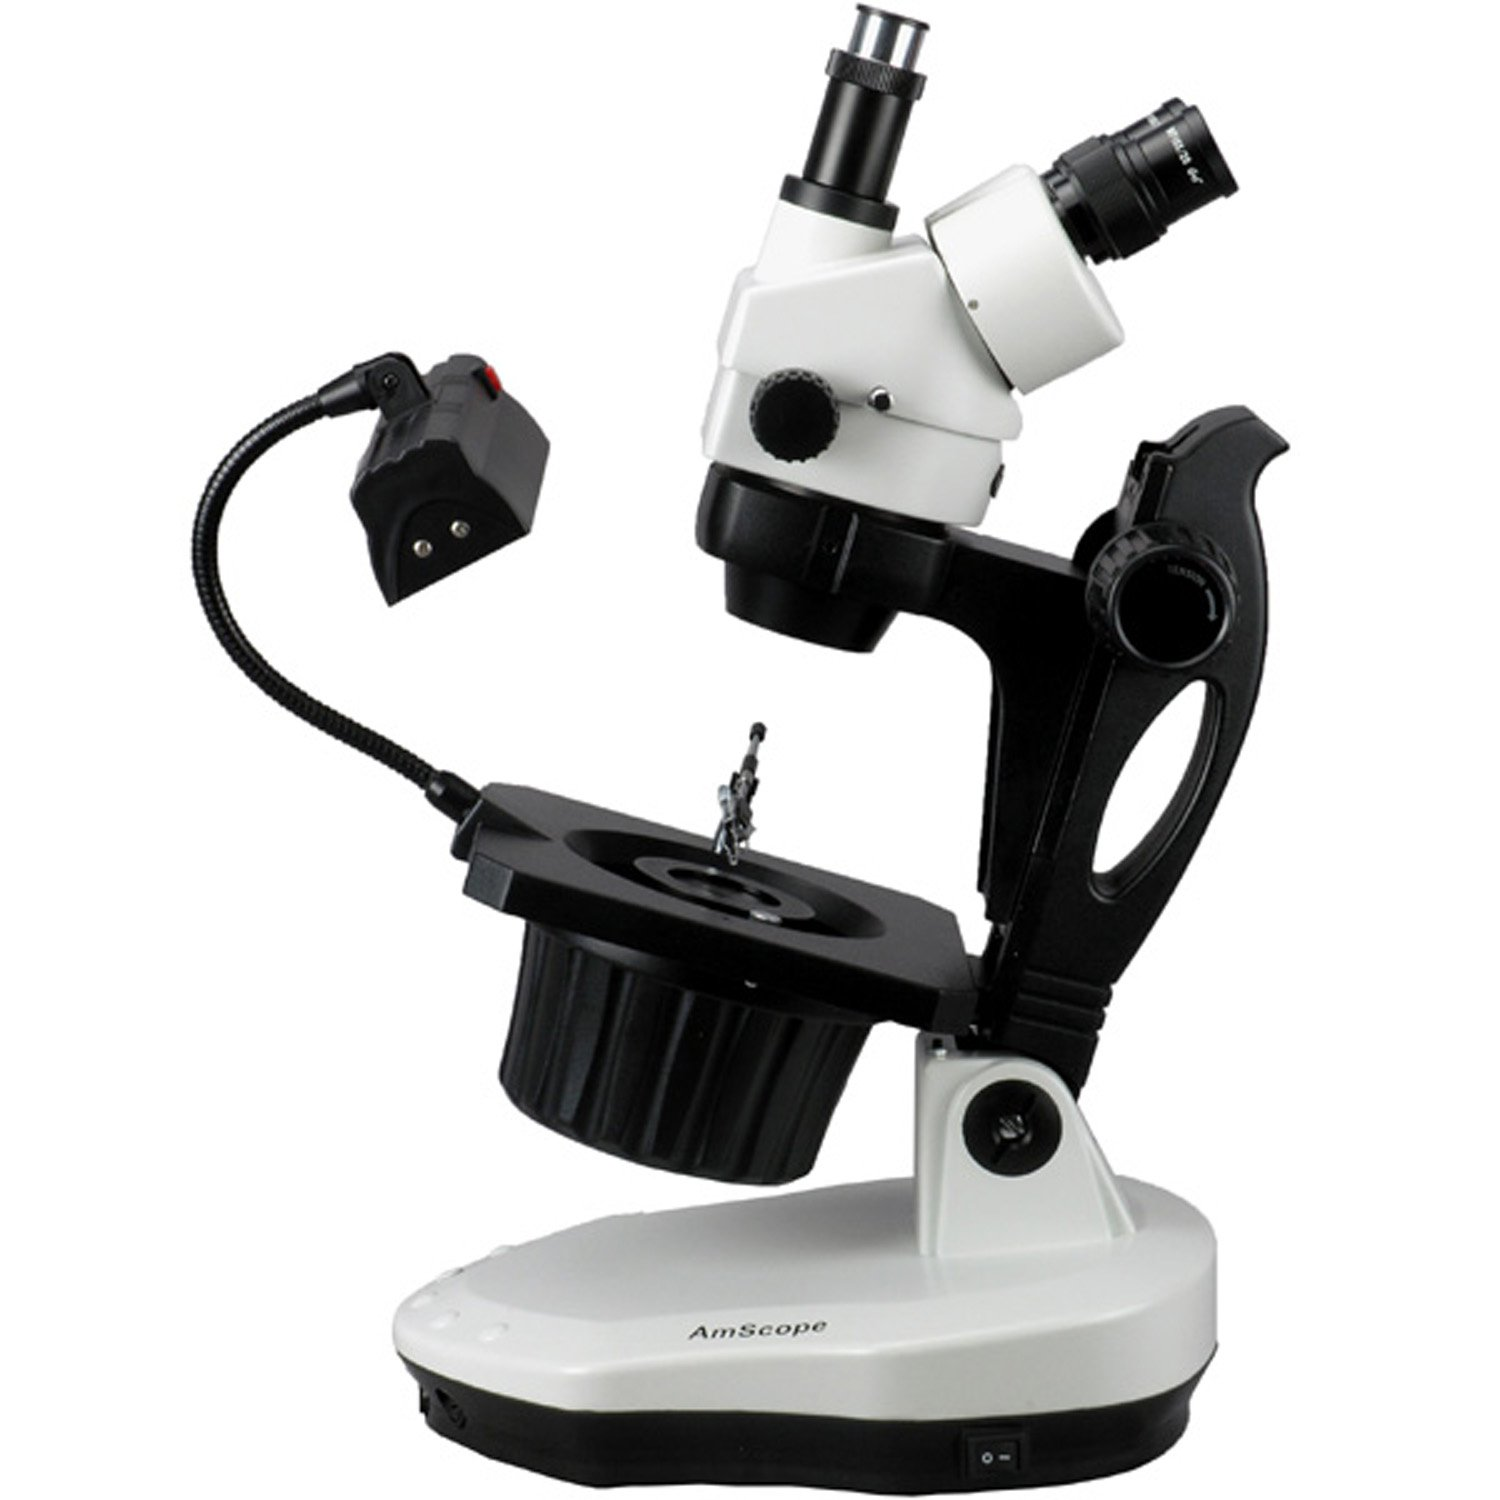 AmScope GM400T Trinocular Gemology Stereo Zoom Microscope, WH10x Eyepieces, 7X-45X Magnification, 0.7X-4.5X Zoom Objective, Halogen and Fluorescent Lighting, Inclined Pillar Stand, 110V-120V by AmScope